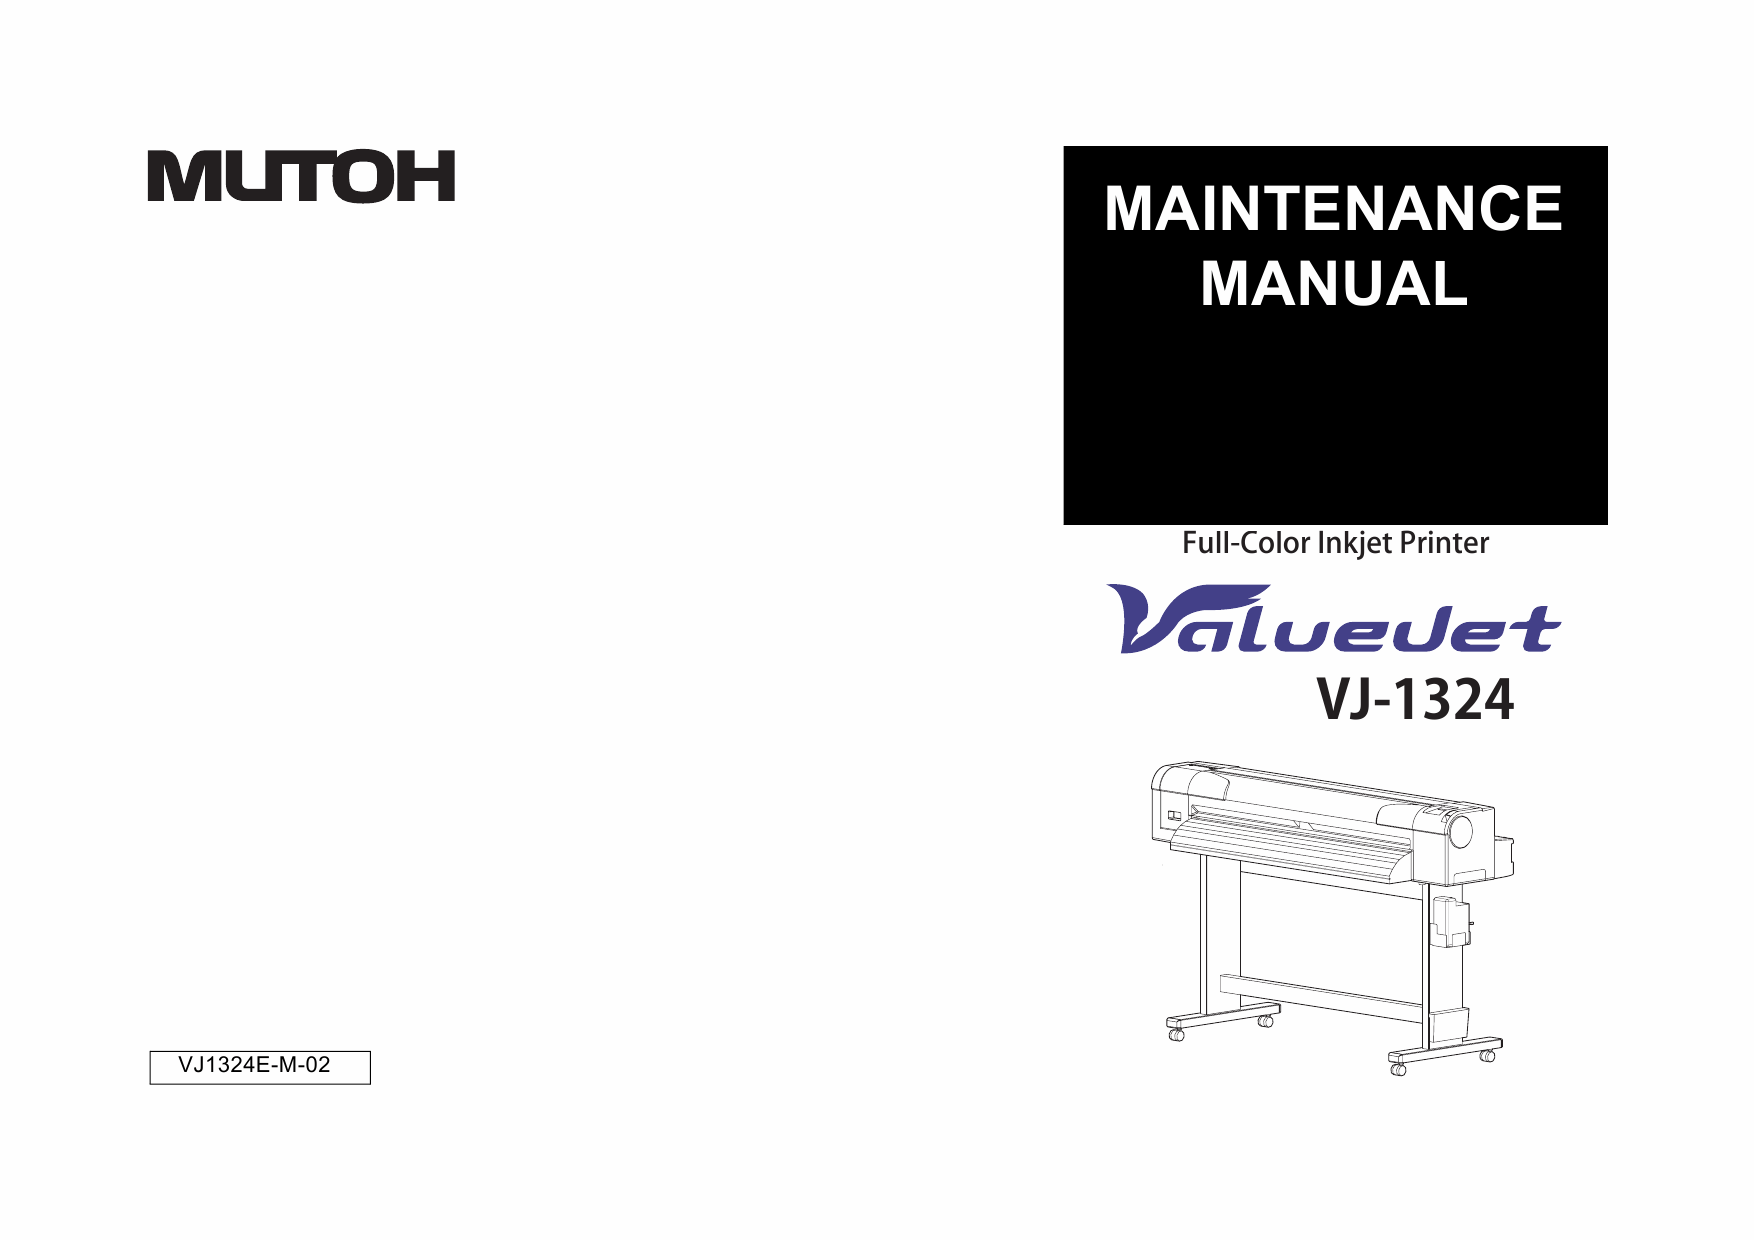 MUTOH ValueJet VJ 1324 MAINTENANCE Service and Parts Manual-1